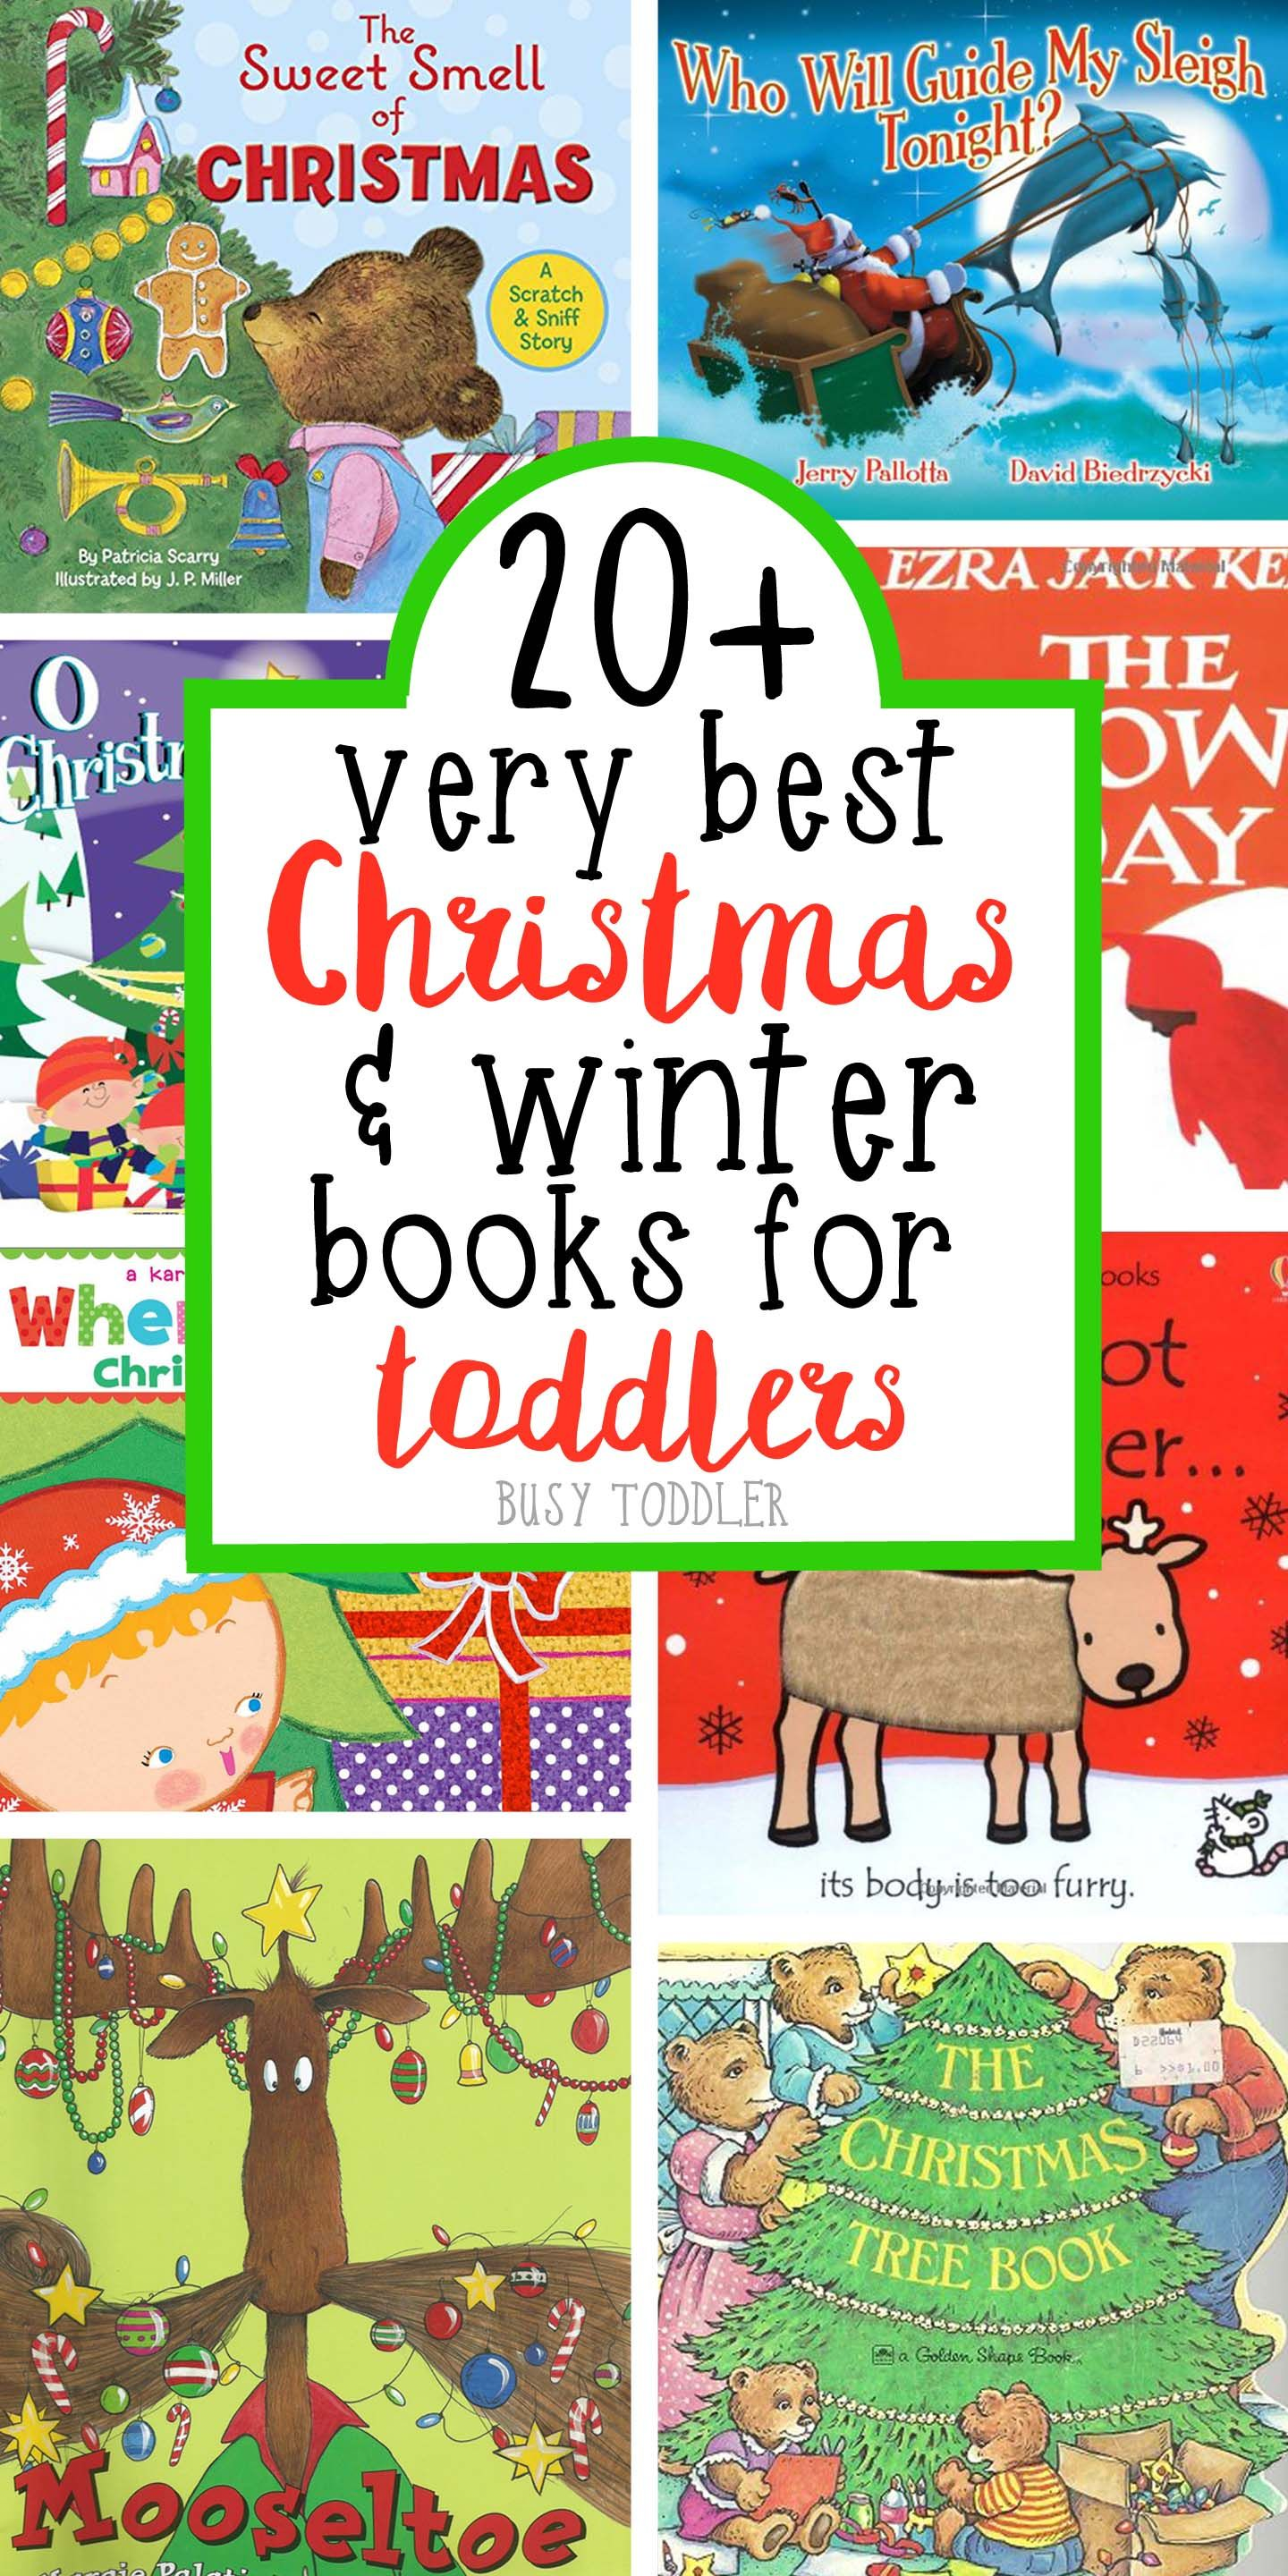 best christmas books for toddlers check out this list of 20 christmas books for toddlers and preschoolers - Best Christmas Books For Kids